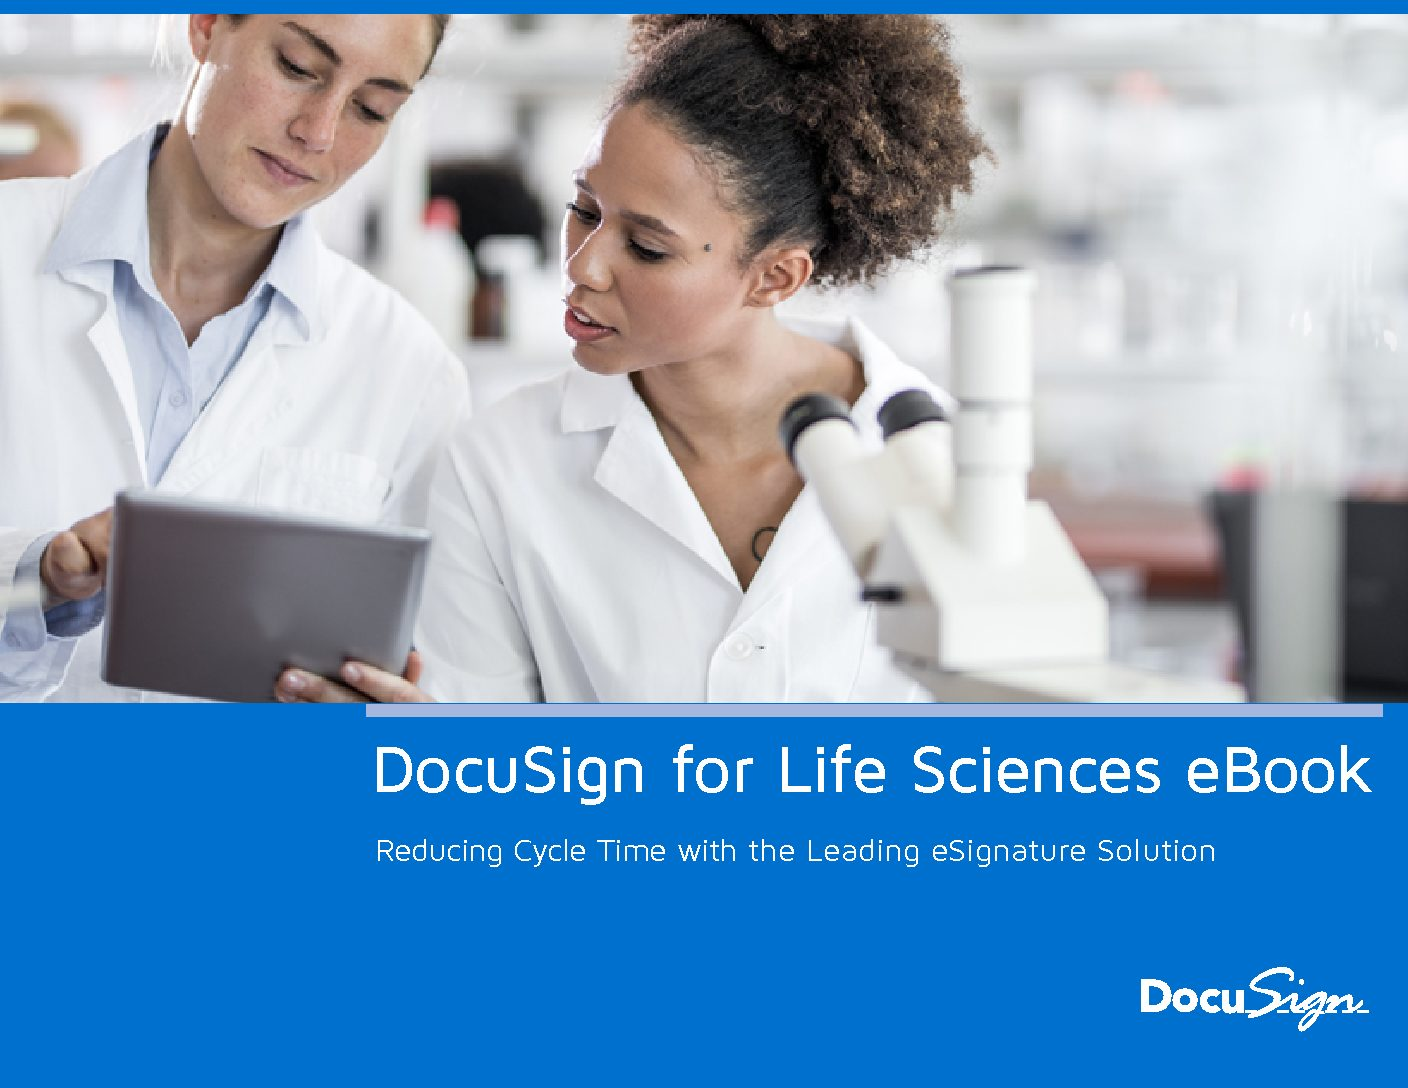 DocuSign for Life Sciences eBook